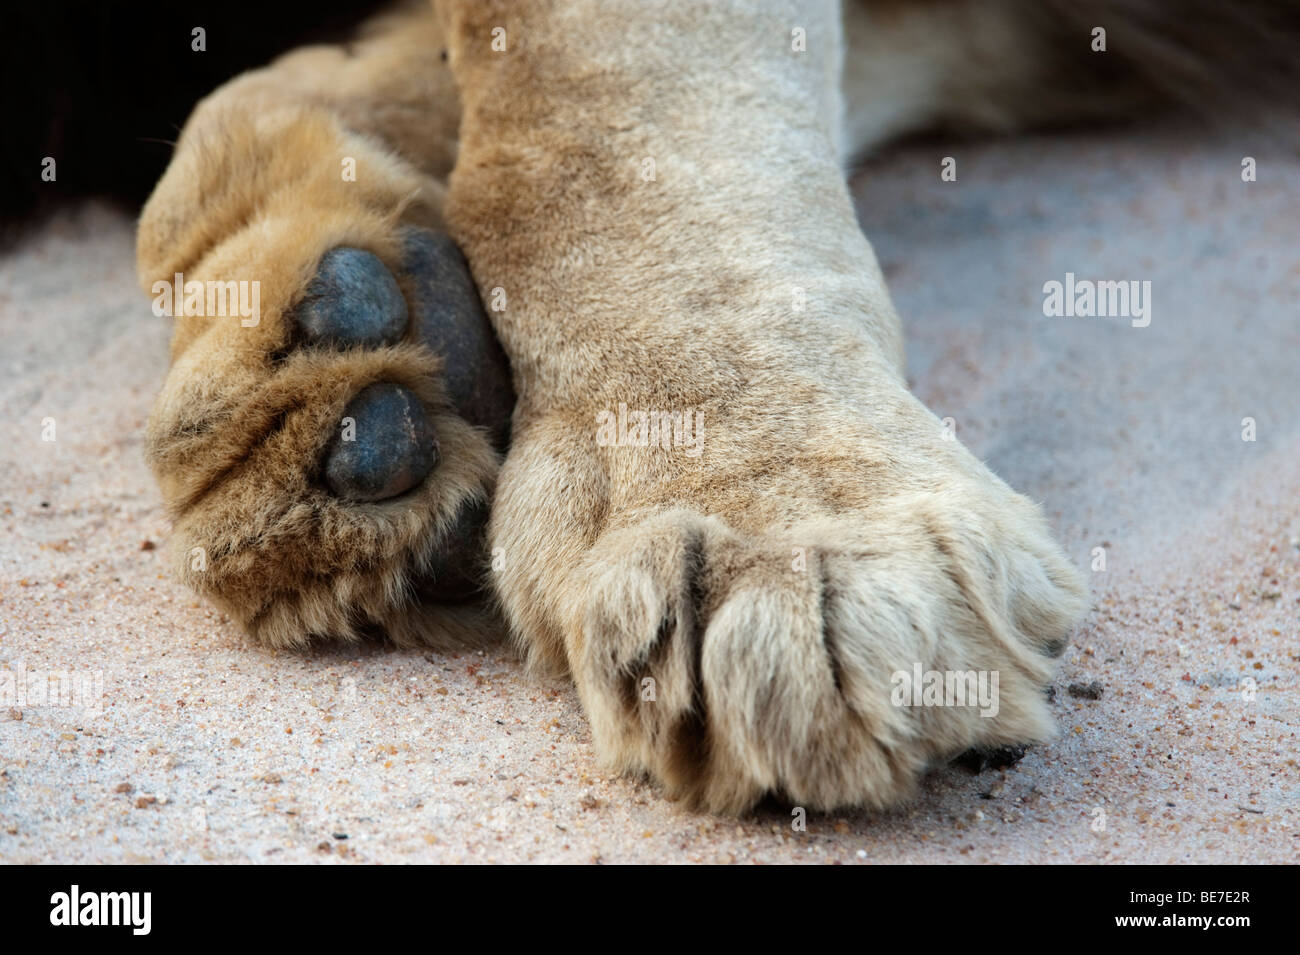 lion paw stock photos lion paw stock images alamy